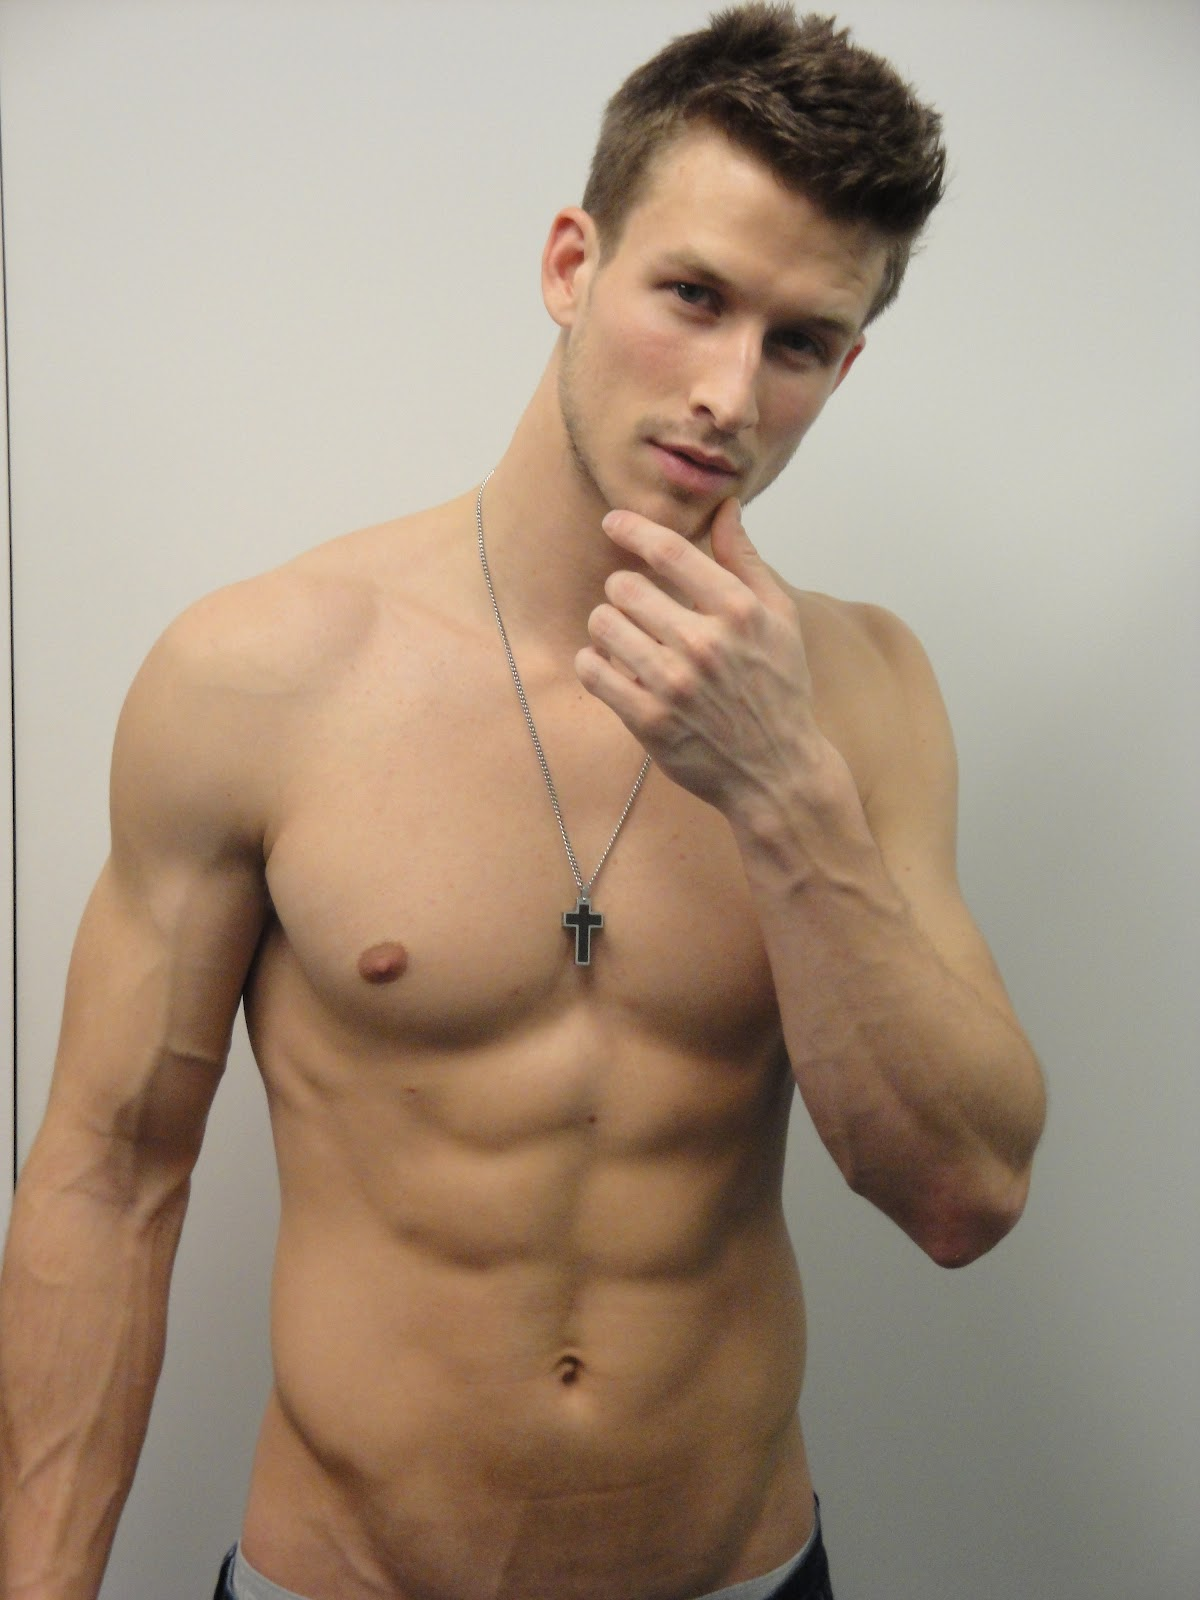 Man of week 7 belated adam huber the soyez vous m me blog for Hot images blog